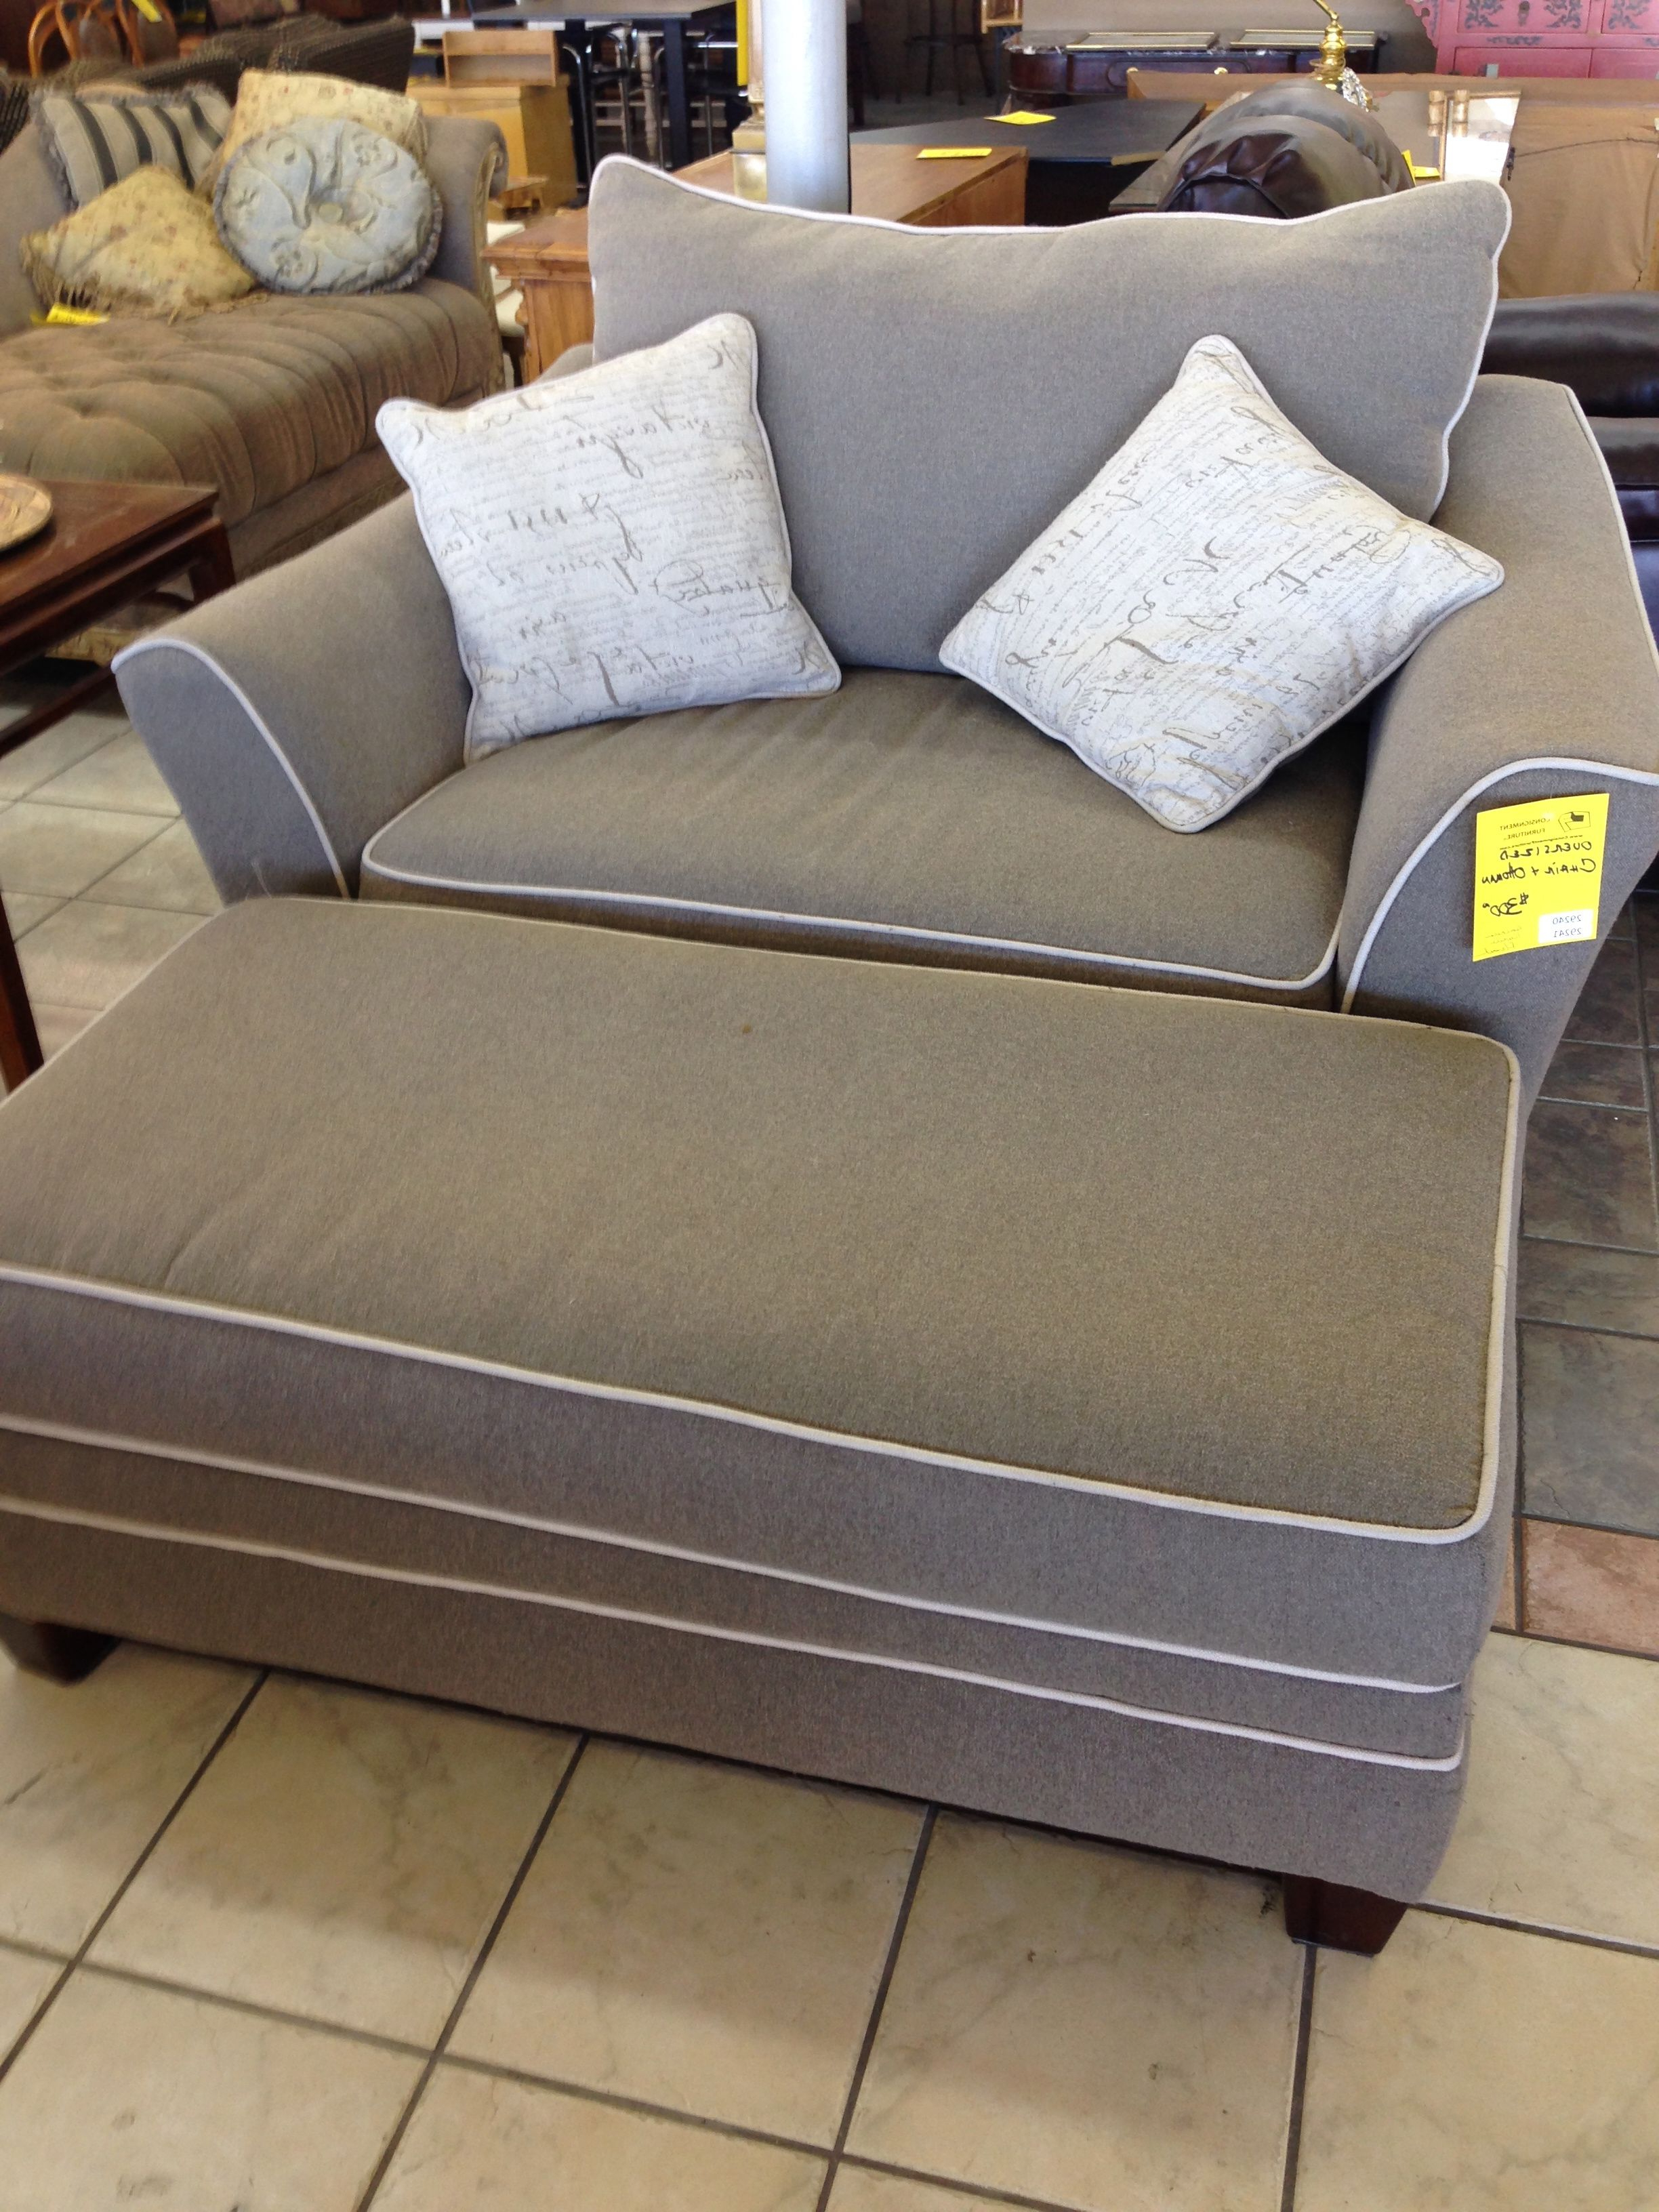 2019 Sofa Chair With Ottoman Pertaining To Stylish Grey Fabric Oversized Chairs With Rectangle Ottoman In (Gallery 3 of 20)